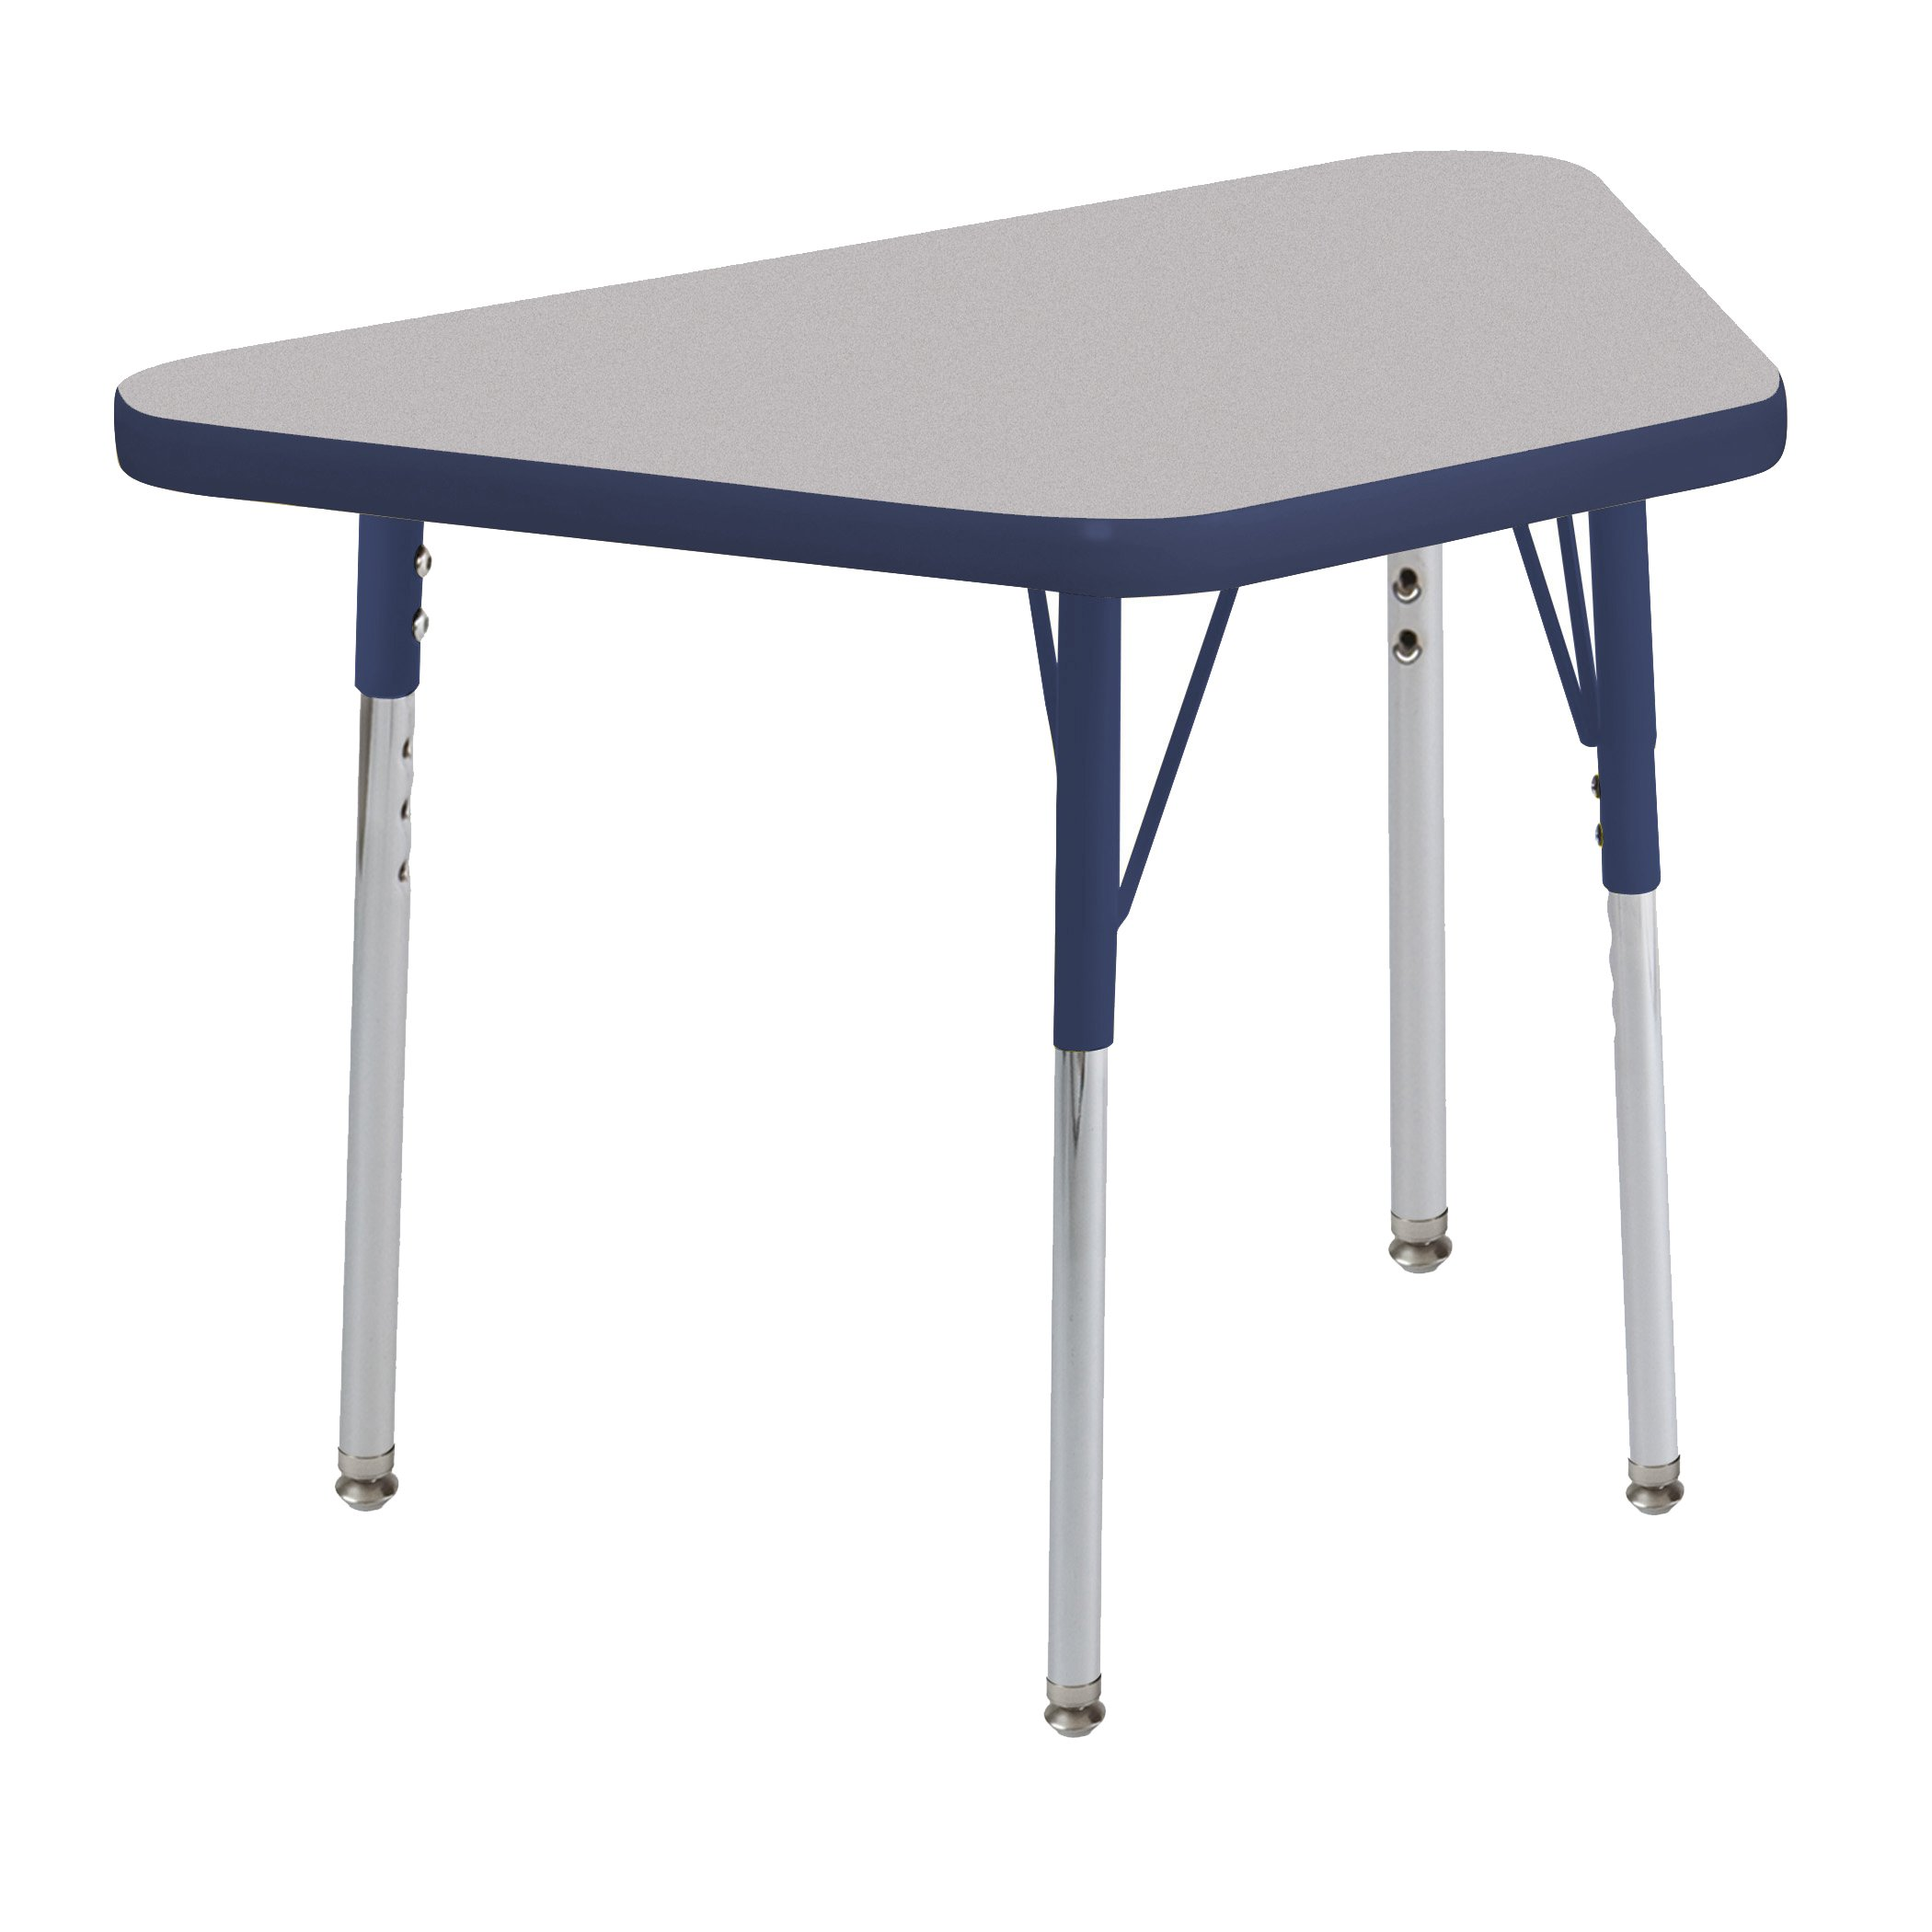 ECR4Kids Everyday 18'' x 30'' Trapezoid Activity School Table, Standard Legs w/Swivel Glides, Adjustable Height 19-30 inch (Grey/Navy)